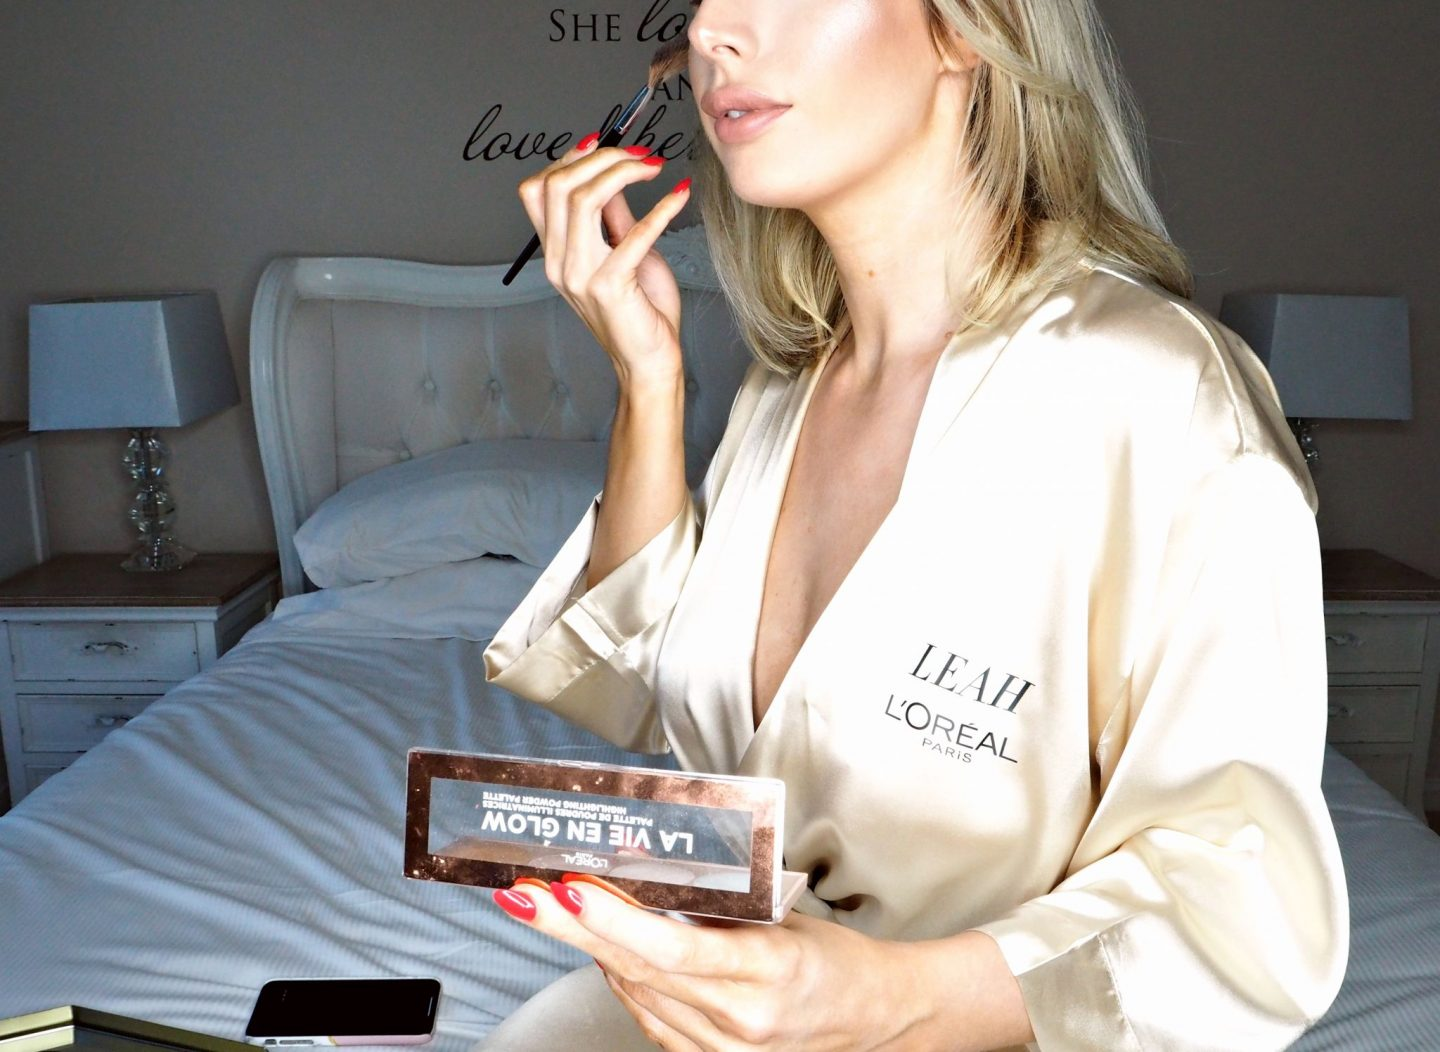 L'Oreal La Vie En Glow highlighter - the best highlighter I've used!